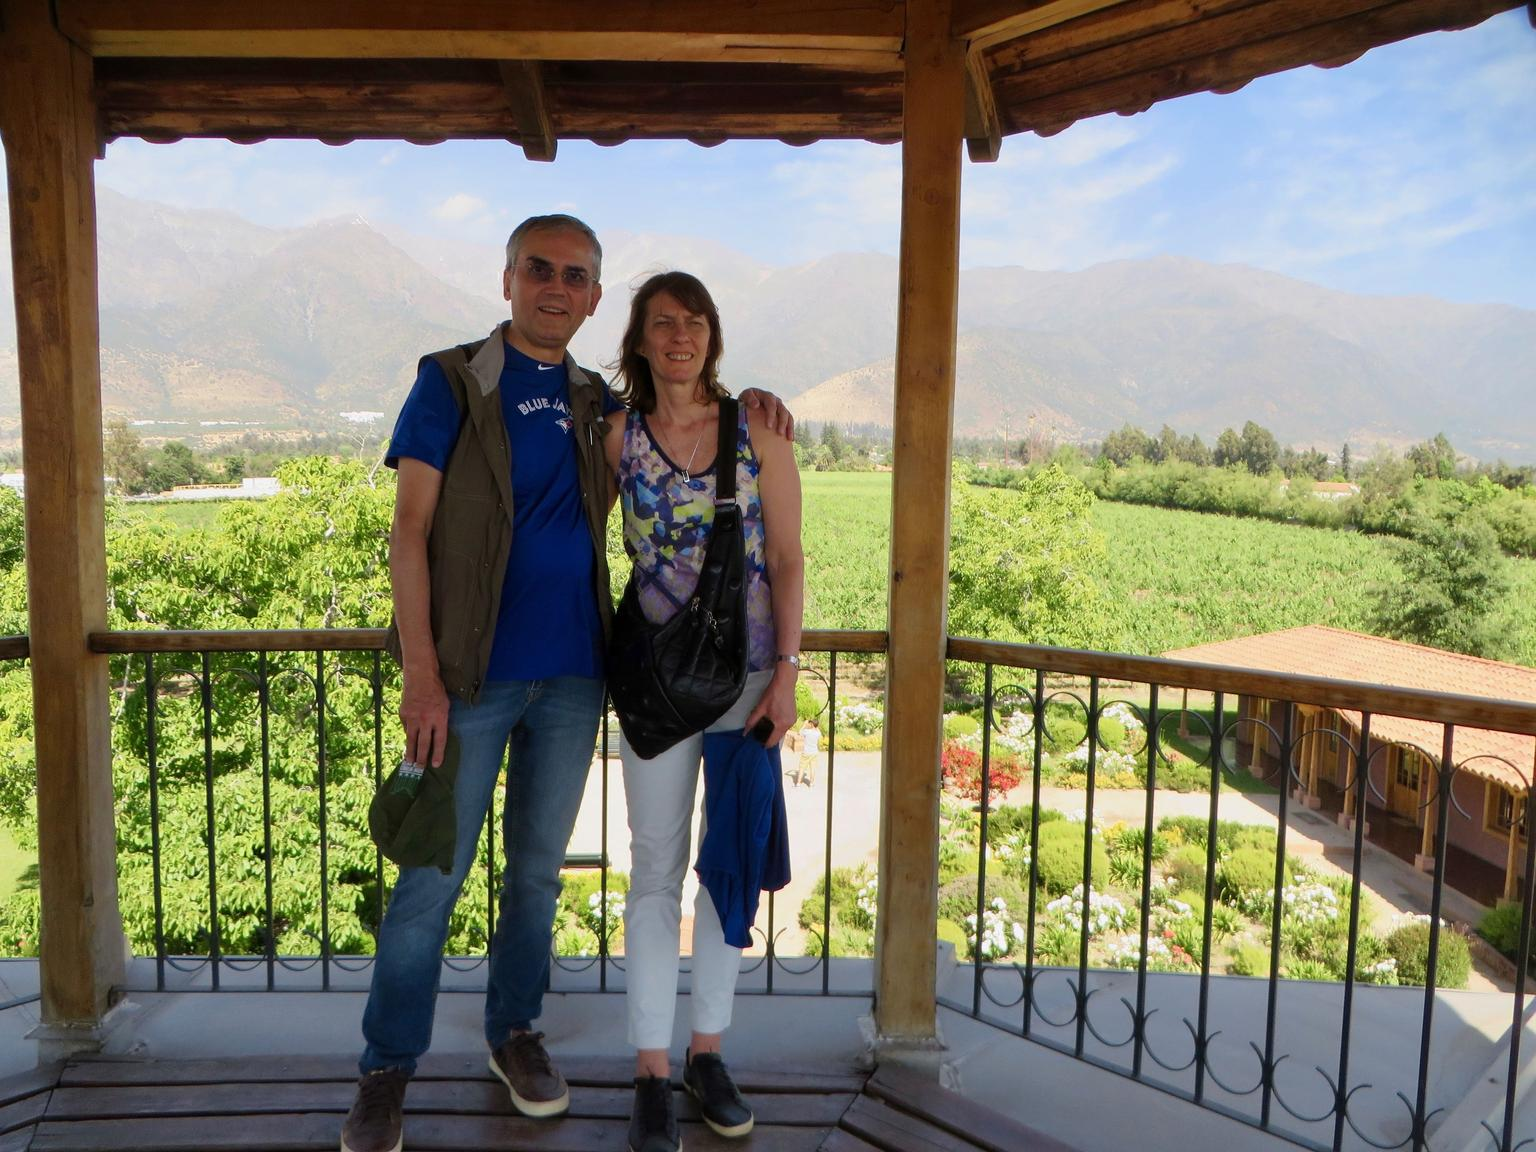 Small Group Tour: Best of Maipo Winery Experience